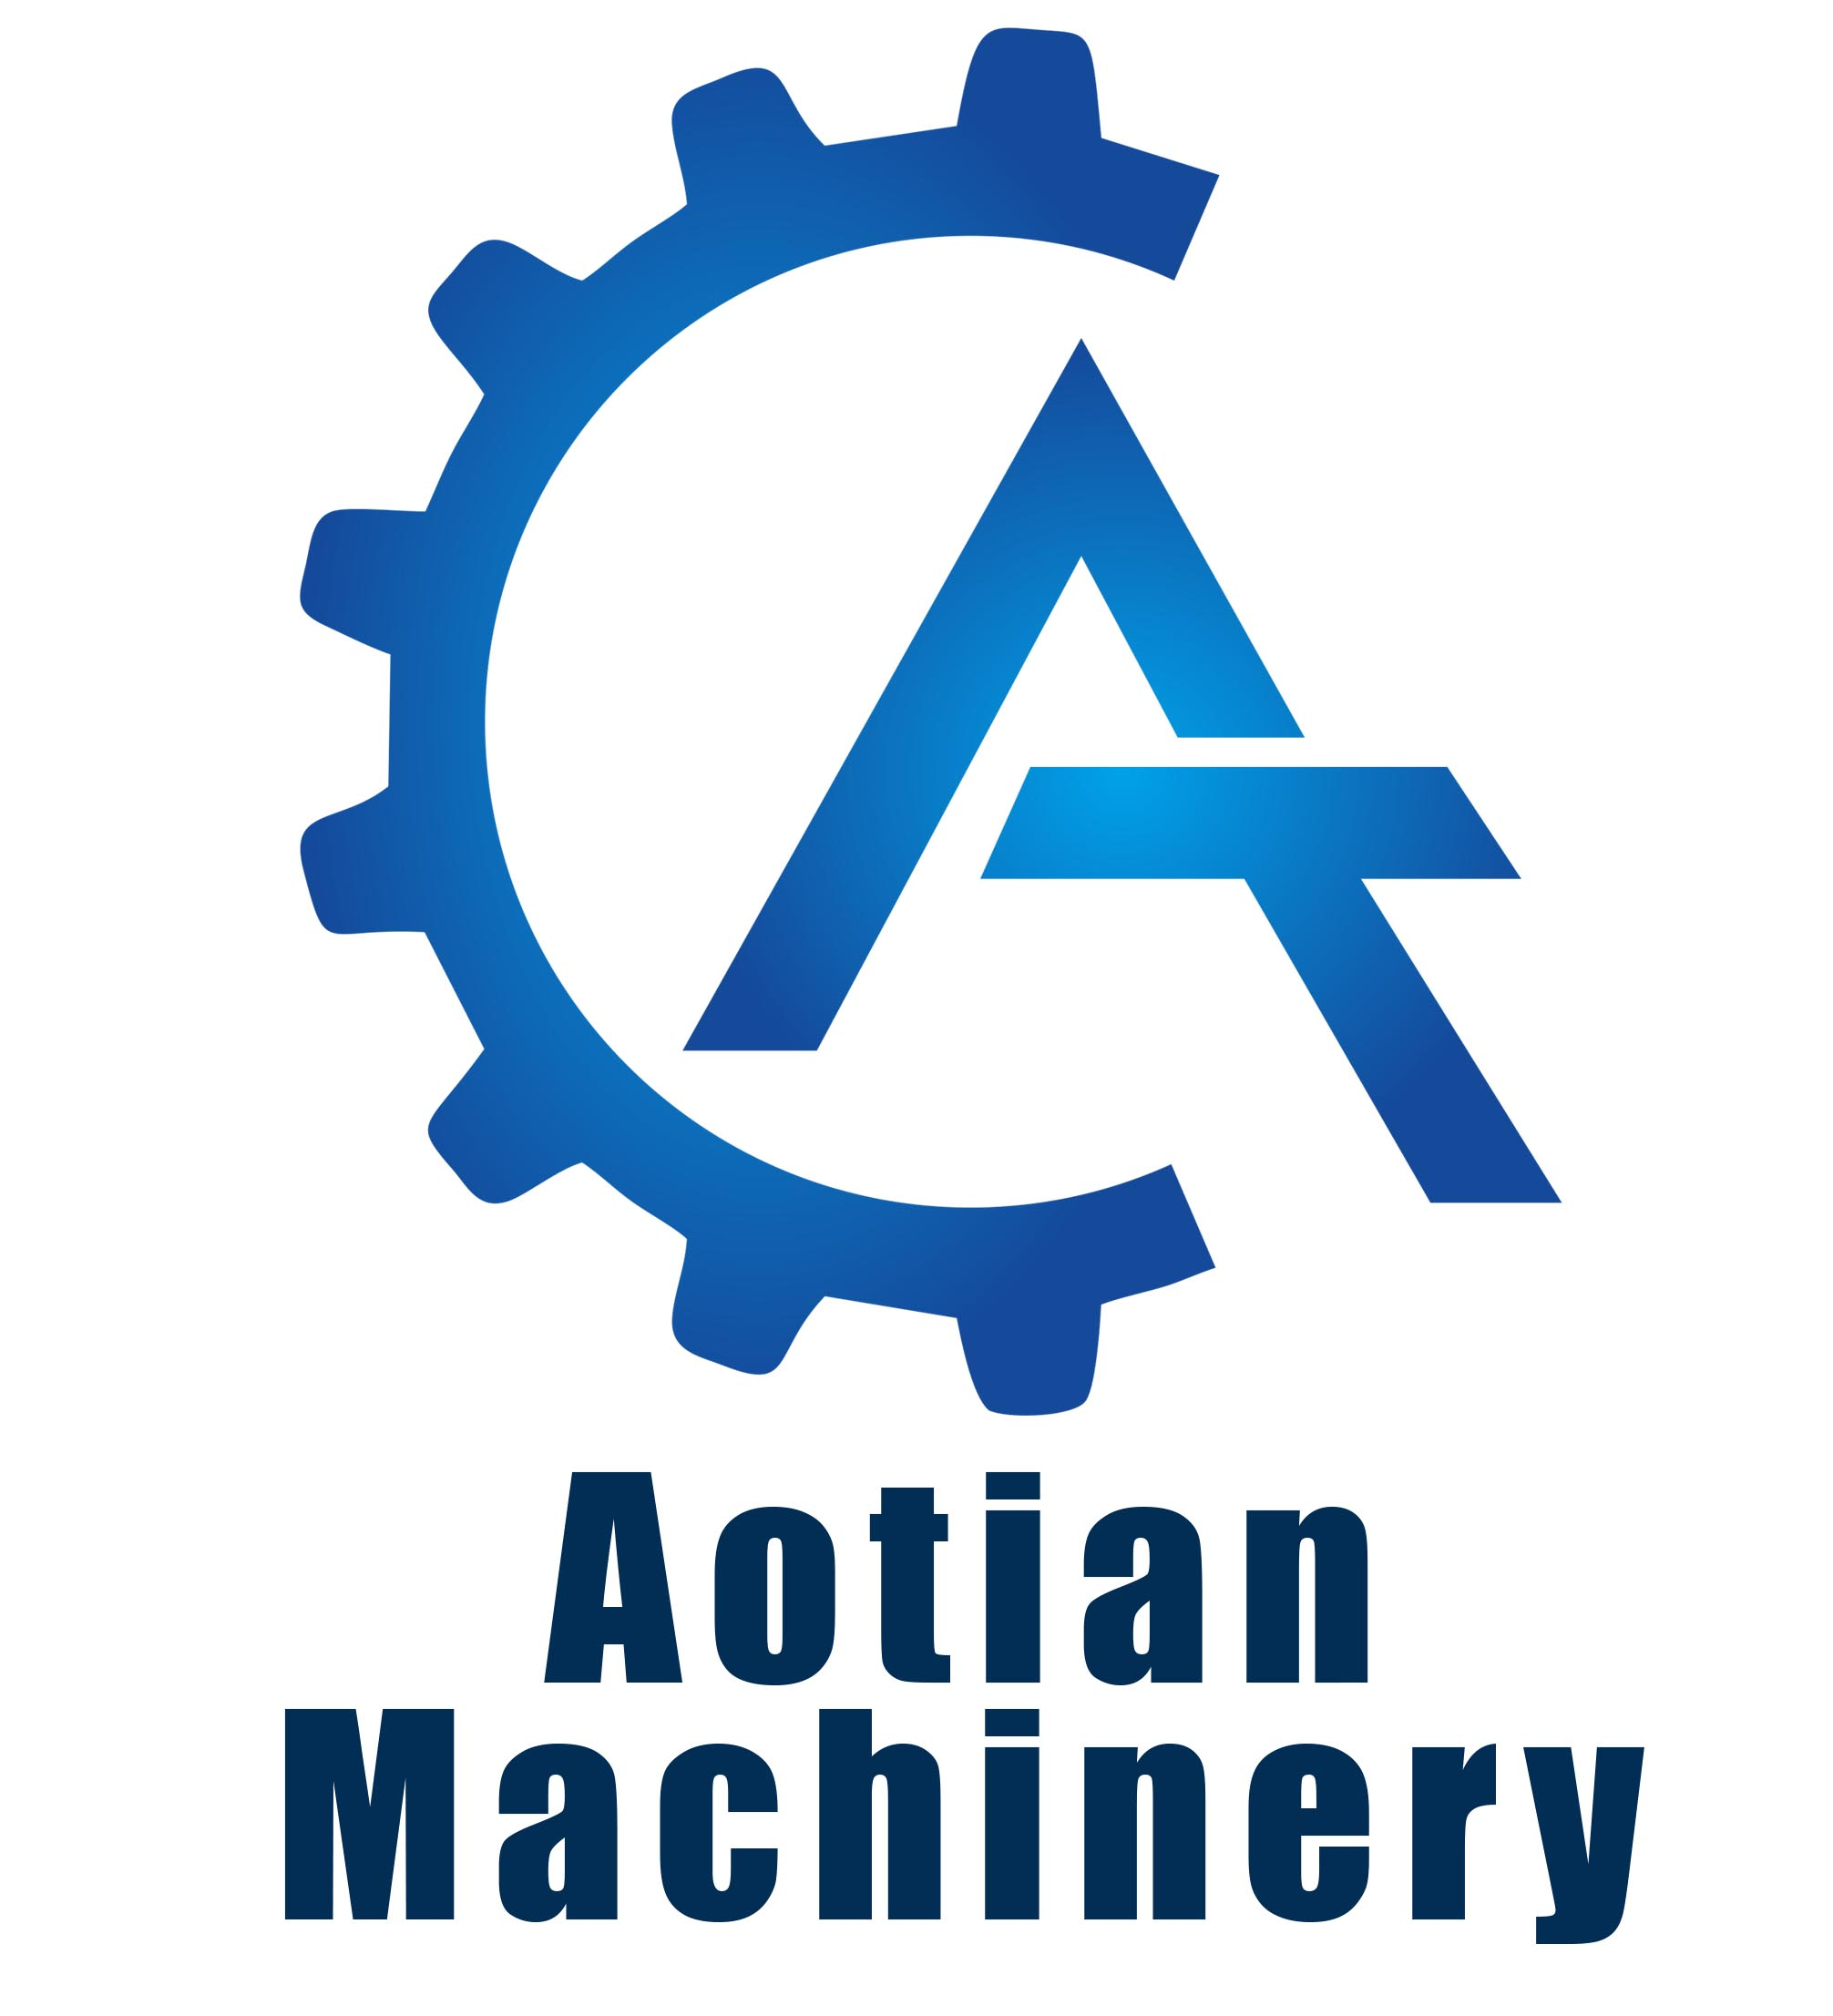 Aotian Machinery Manufacturing Co., Ltd. logo